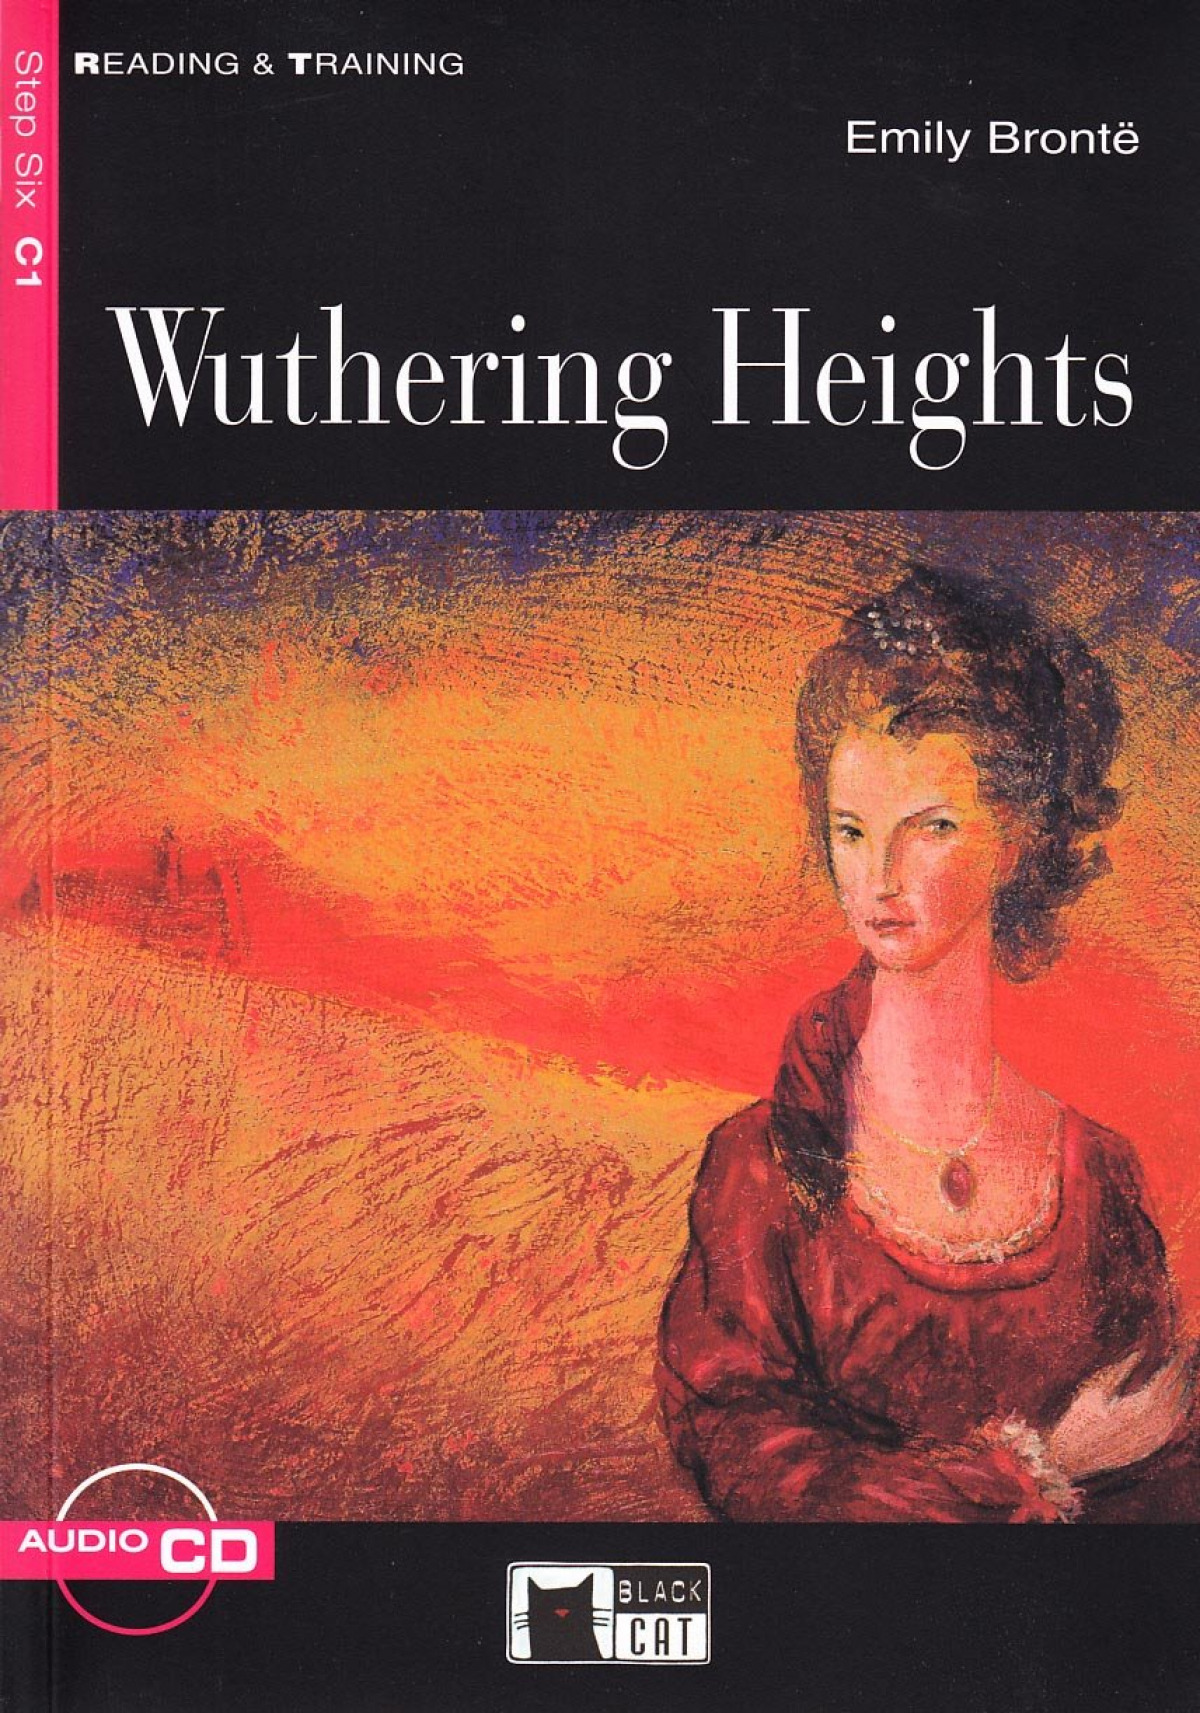 Wuthering heights. book + cd - Bronte, Emily